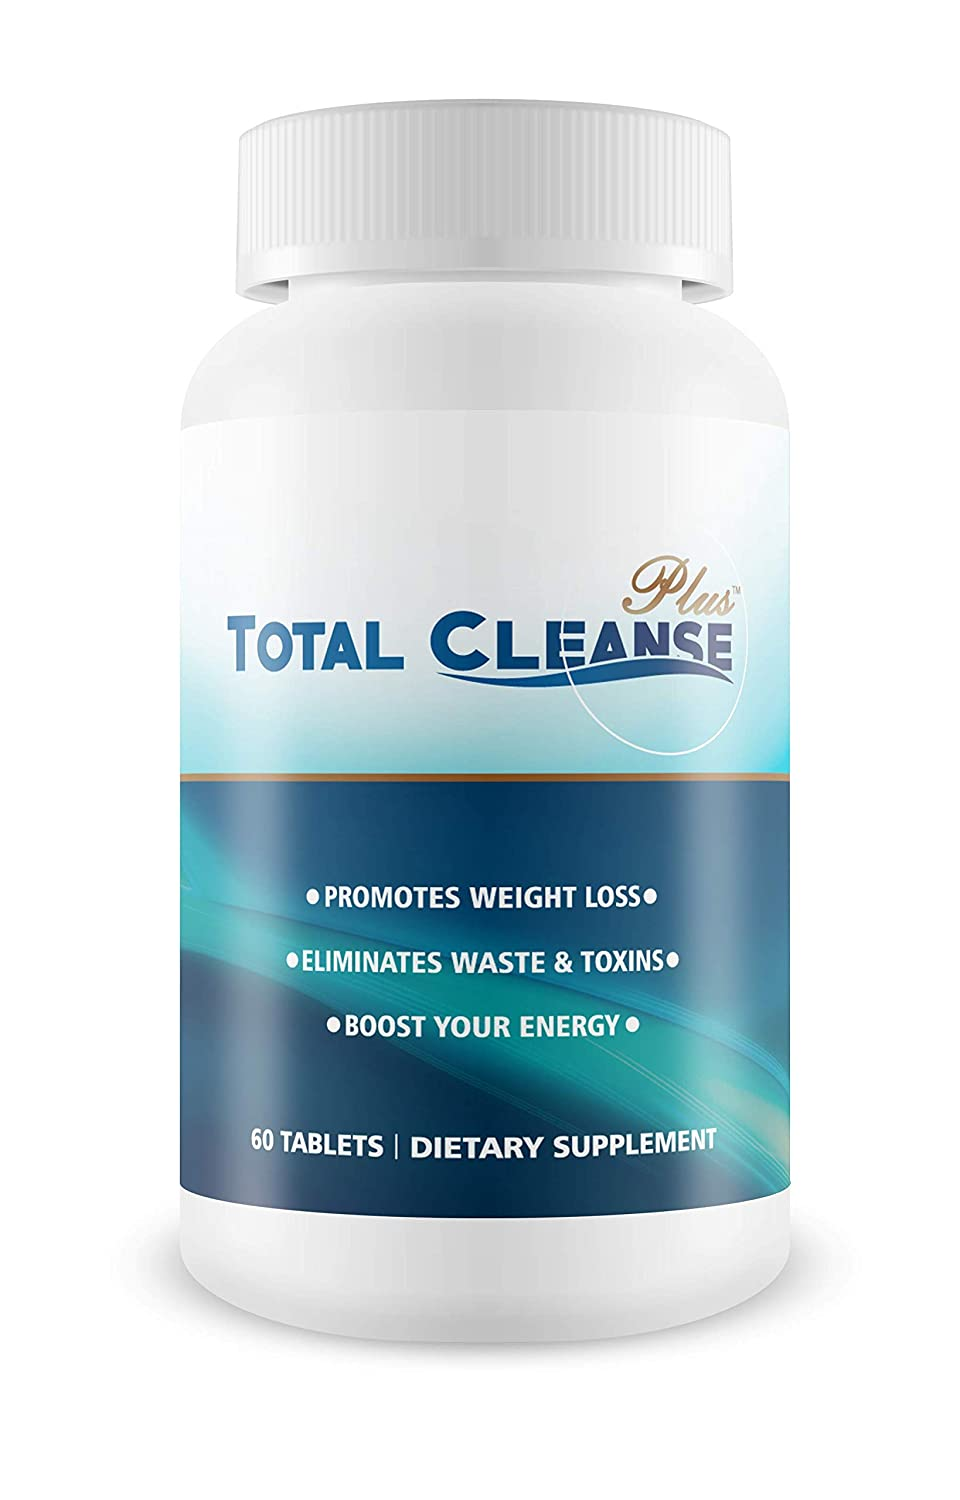 Total Cleanse Plus- Lose Weight – Safe and Natural – Eliminate Waste and Toxins – 60 Tablets